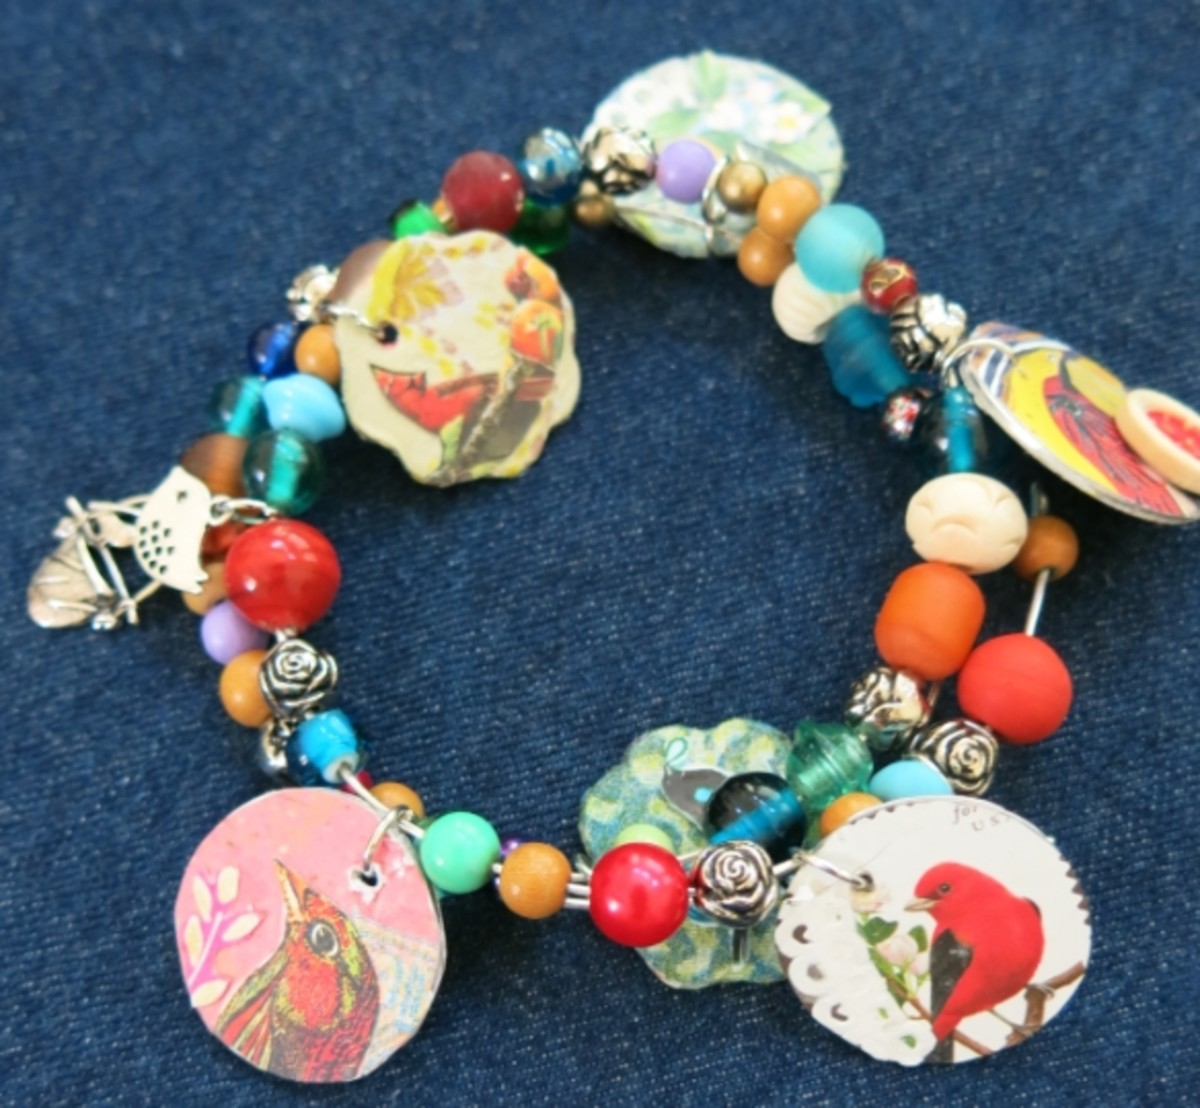 Use memory wire and beads to make a bracelet with your handmade charms